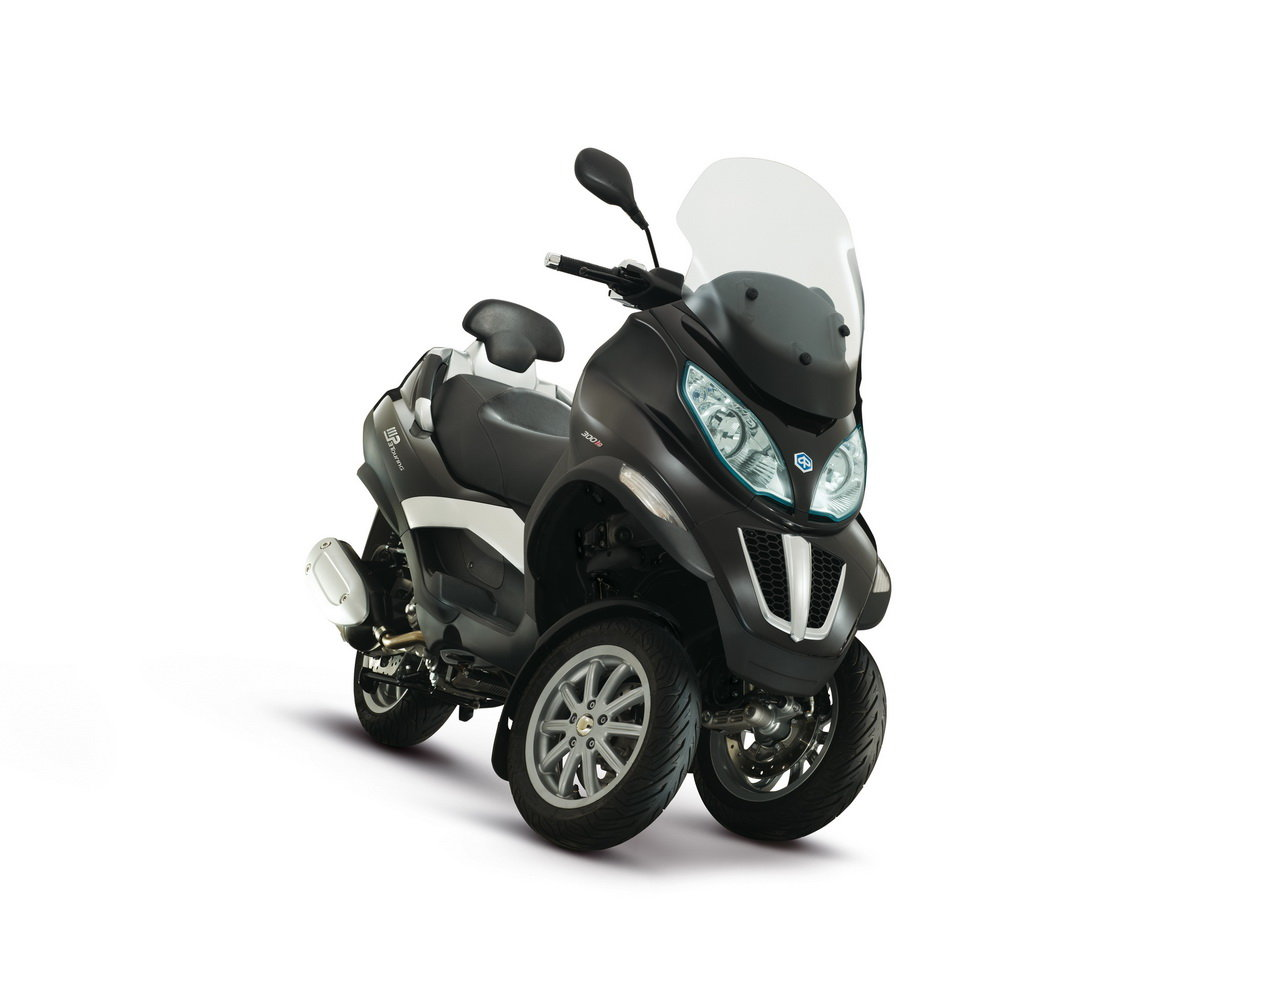 Listino Piaggio Fly 150 Scooter 150-300 - image 15113_piaggio-mp3400-ie-touring-lt on http://moto.motori.net